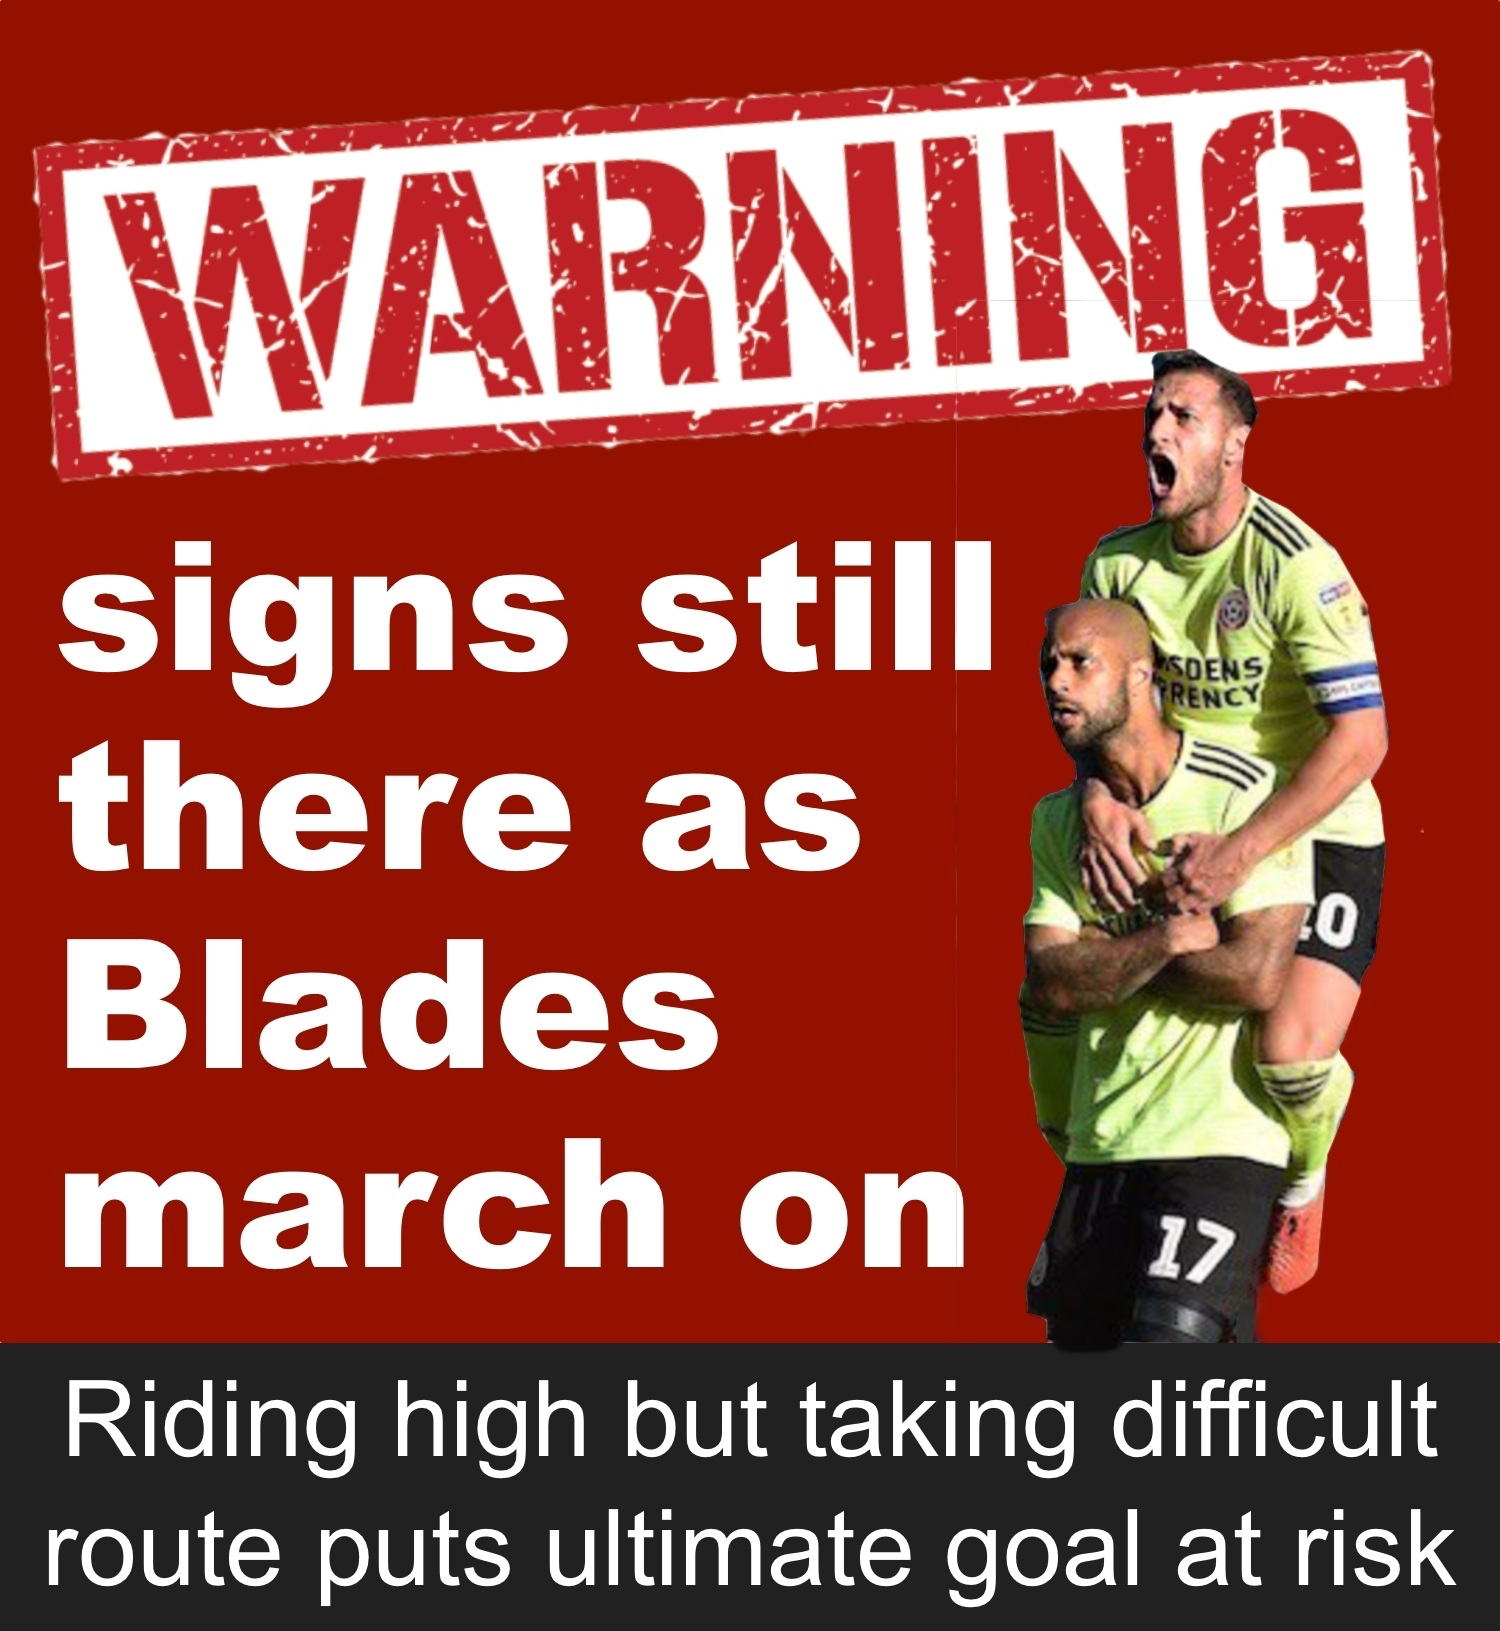 Sheffield United riding high in early Championship race but warning signs remain as Blades take the hard route